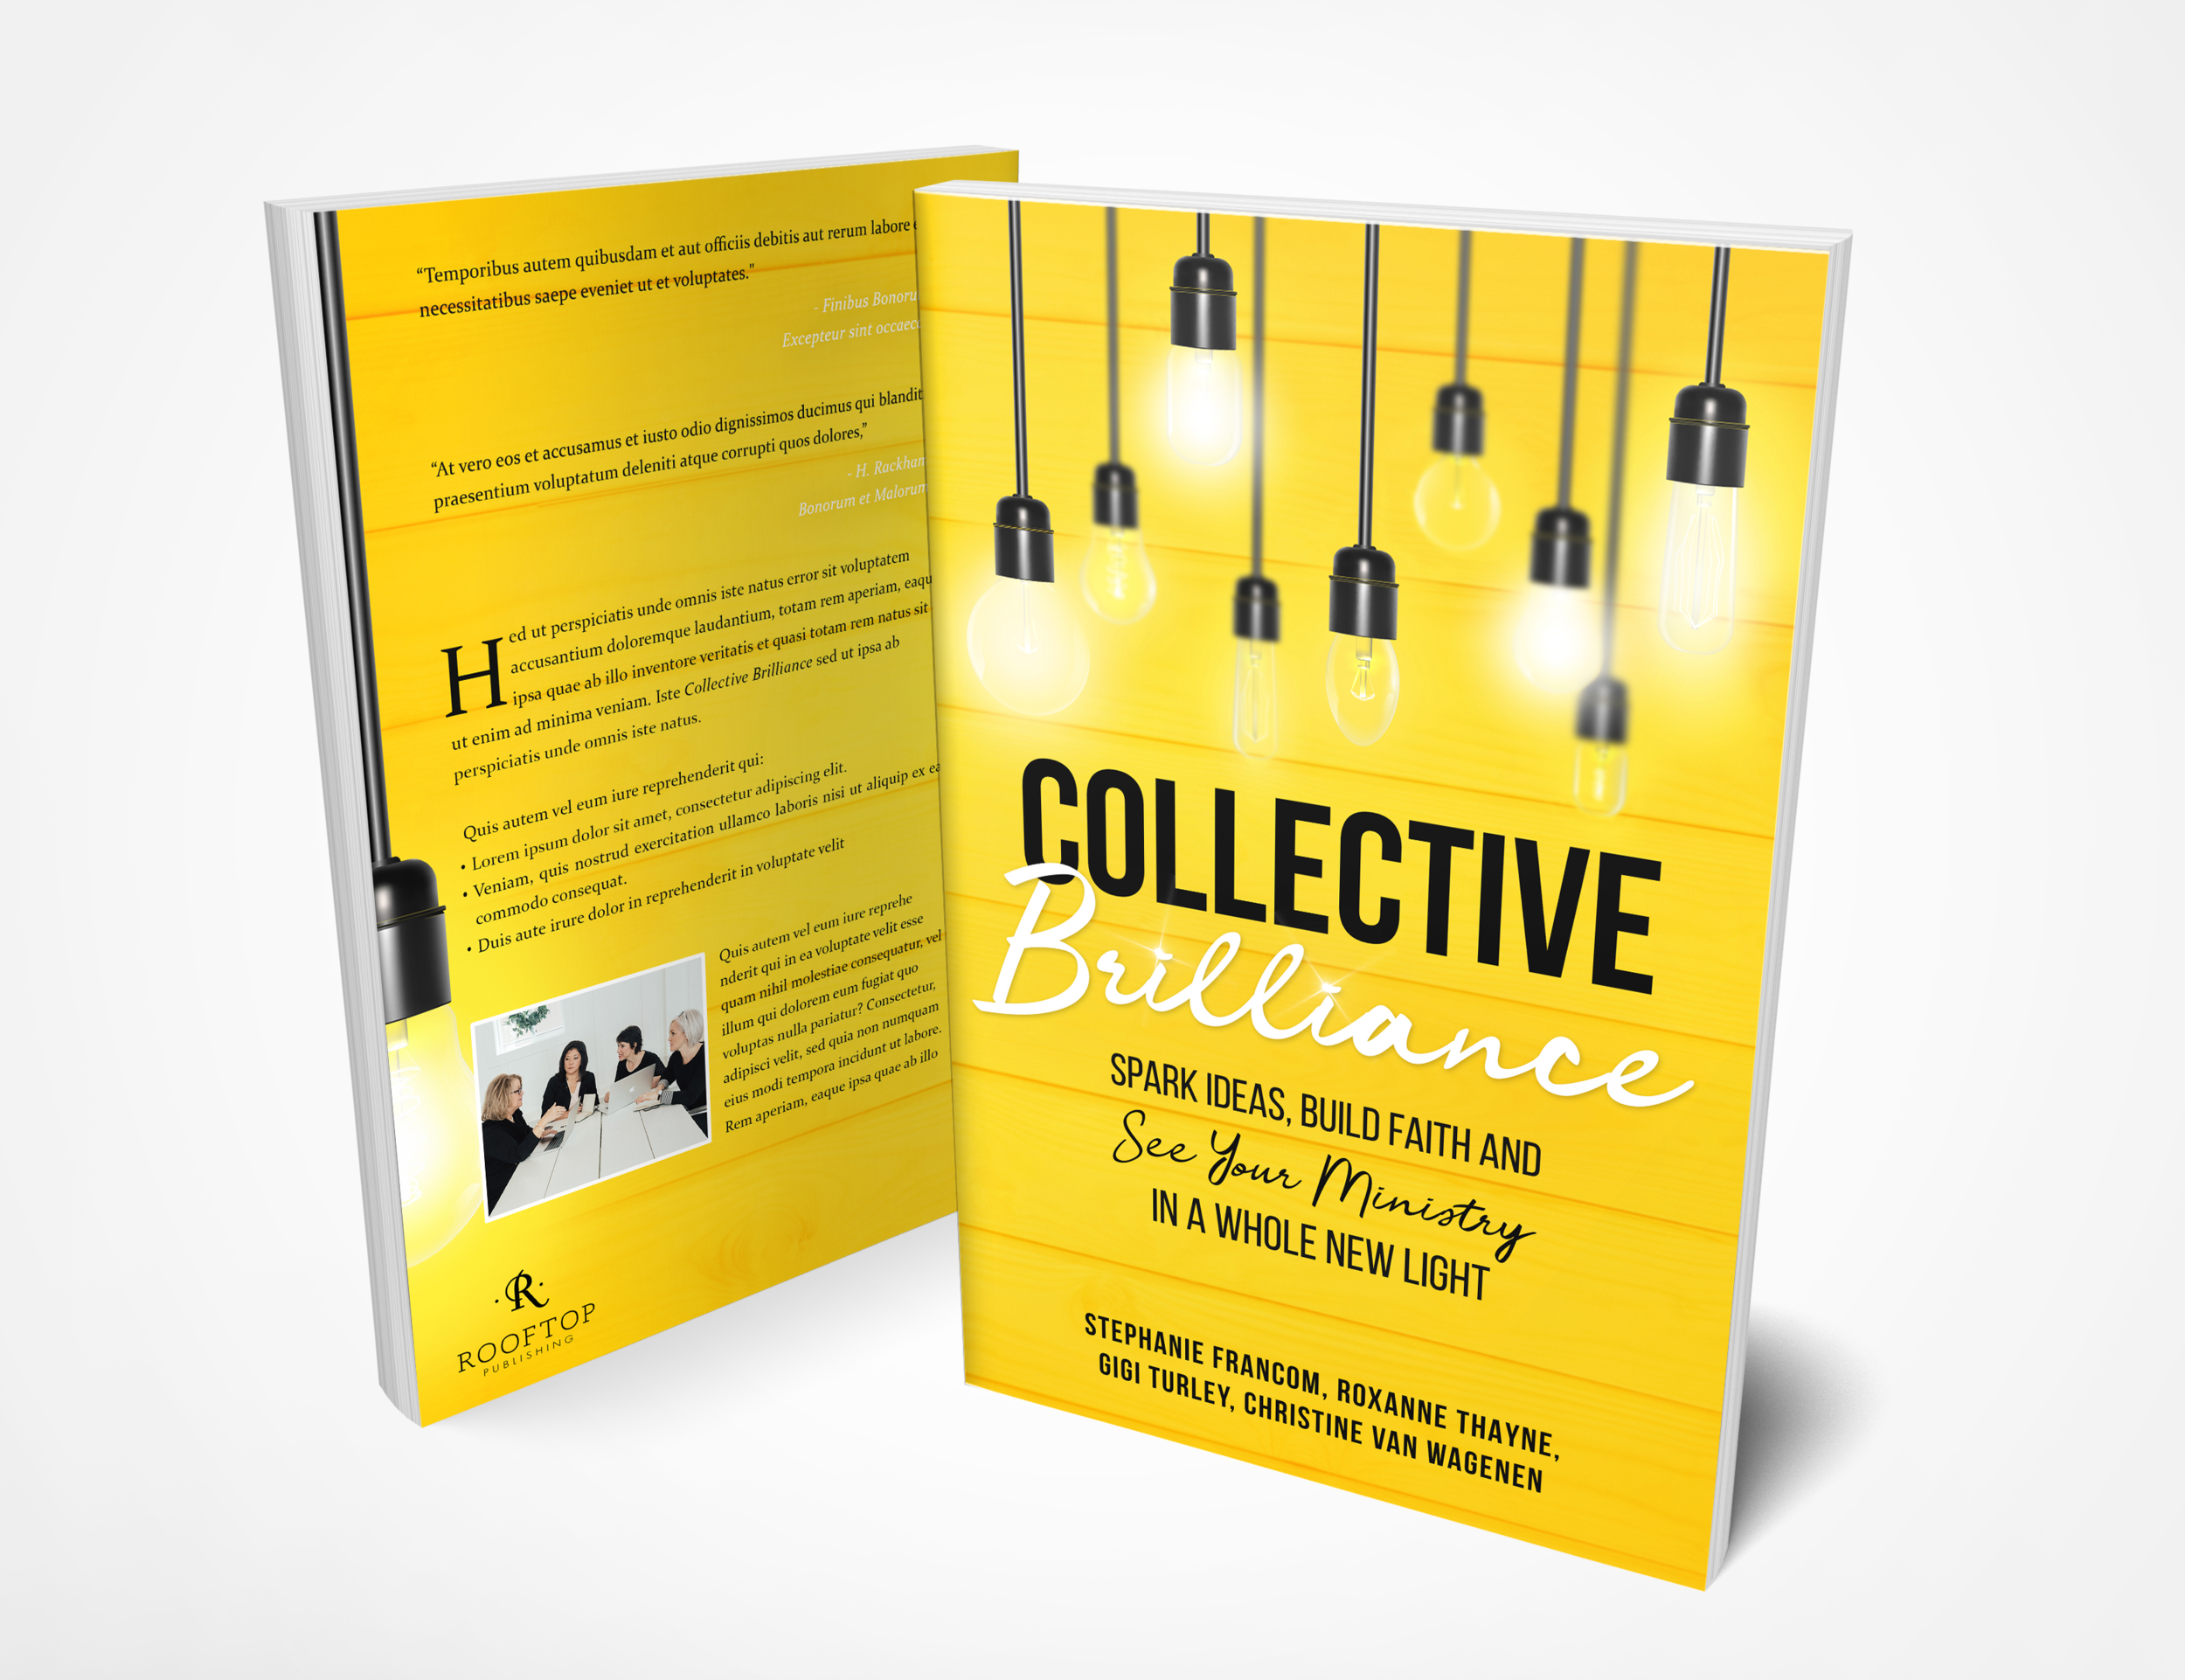 Collective Brilliance: Spark Ideas, Build Faith and See Your Ministry in a Whole New Light $16.00 Click to purchase from Rooftop Publishing